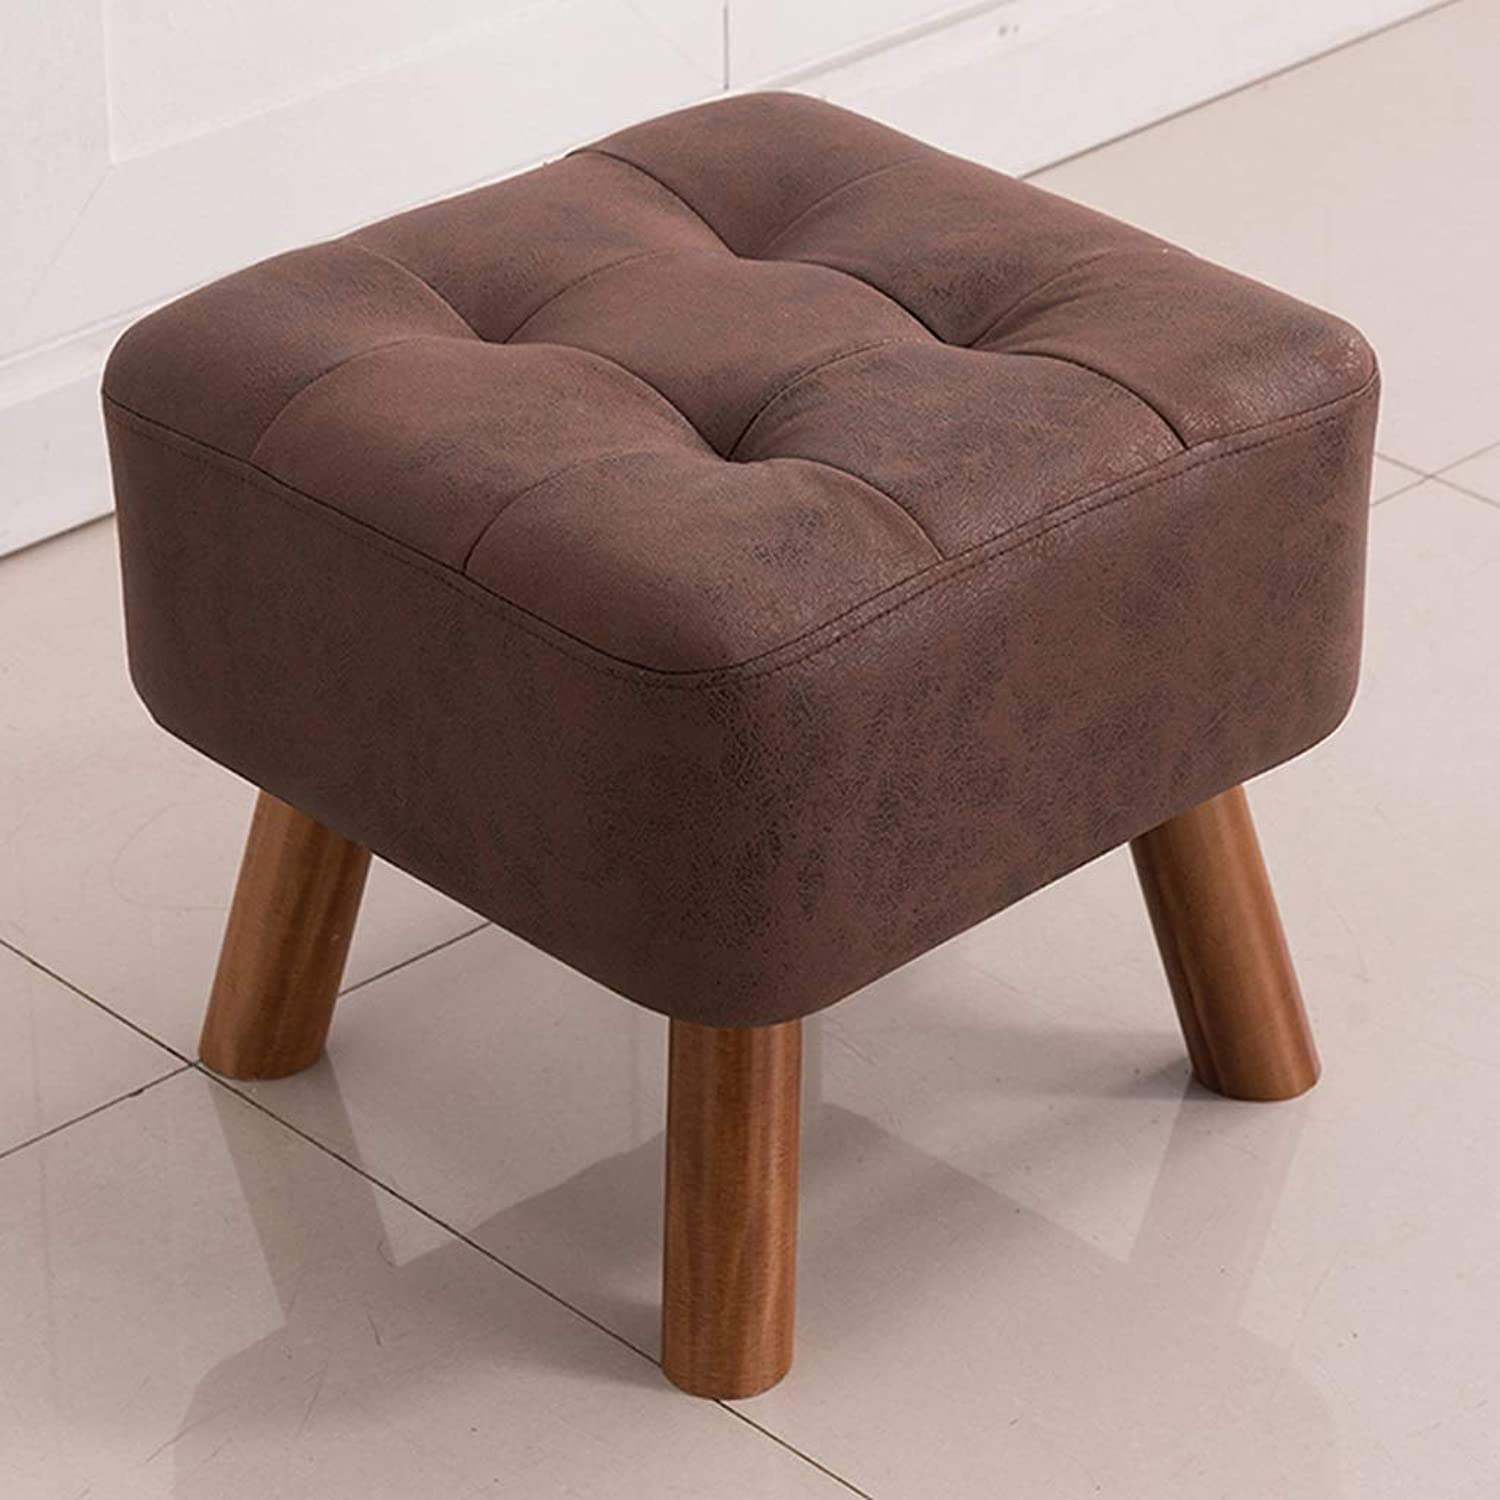 Solid Wood Square Stool Fashion Cloth Art Sofa Chair Tea Table Dressing Table Technology Cloth Stool Porch shoes Changing Stool (Size   Brown)